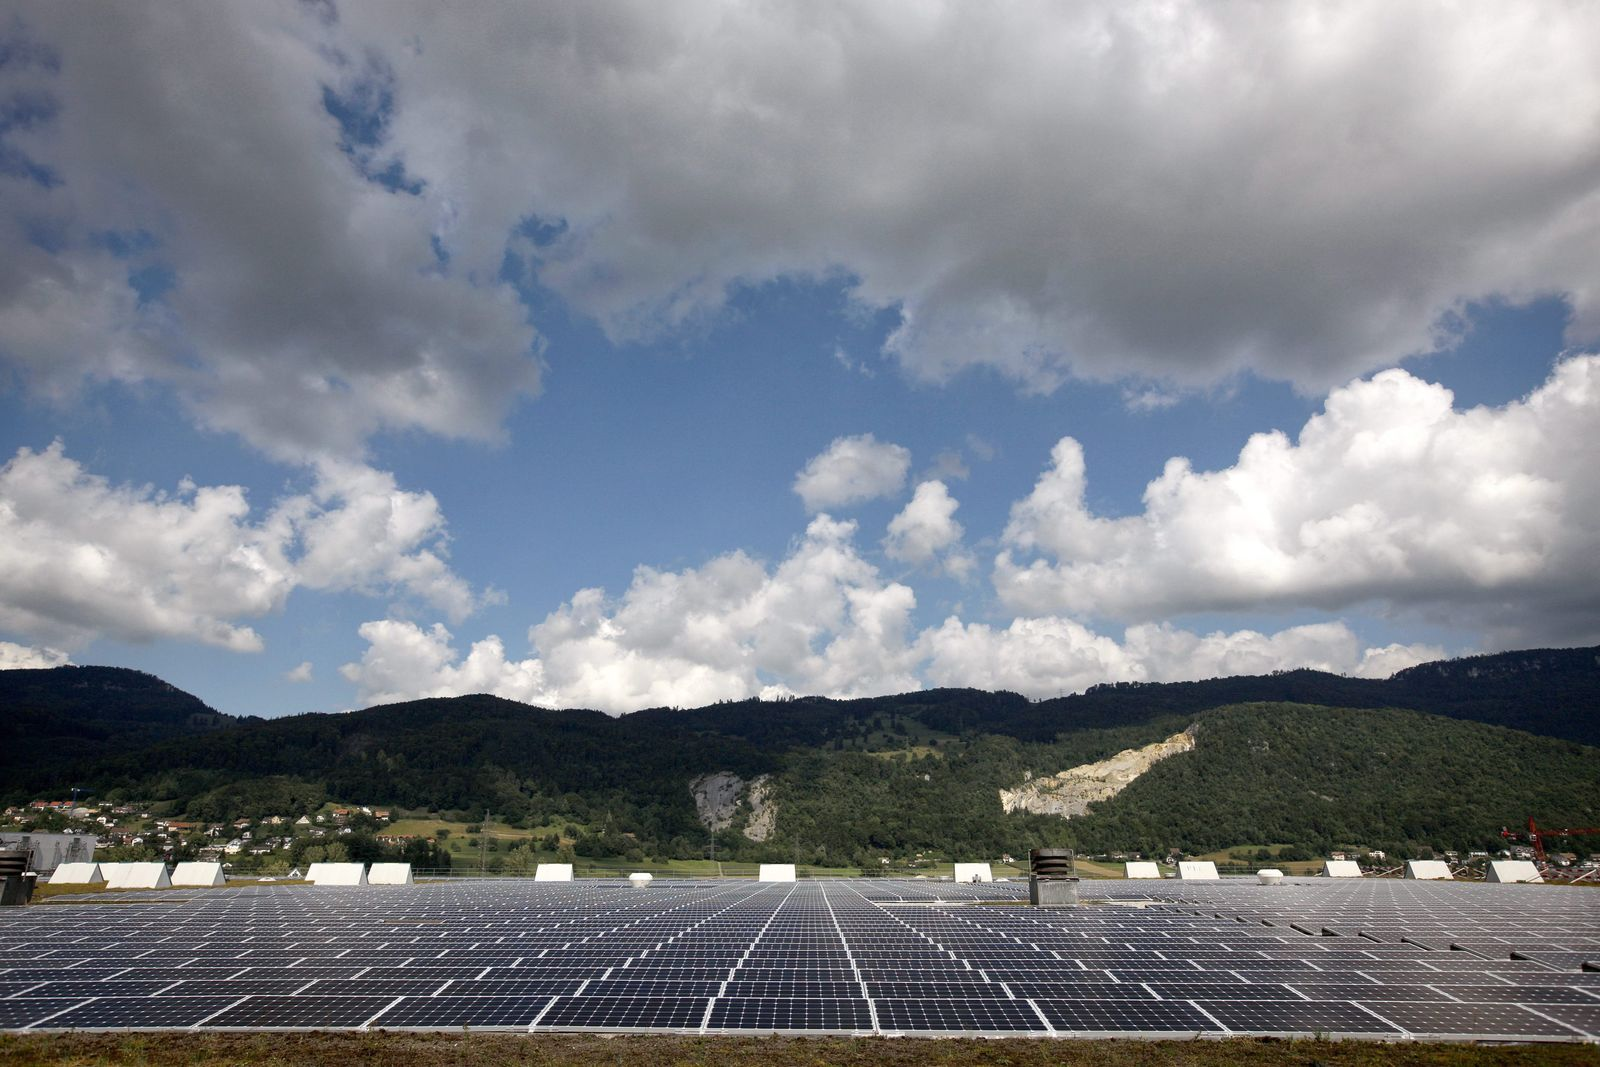 Largest photovoltaic plant in Switzerland opened